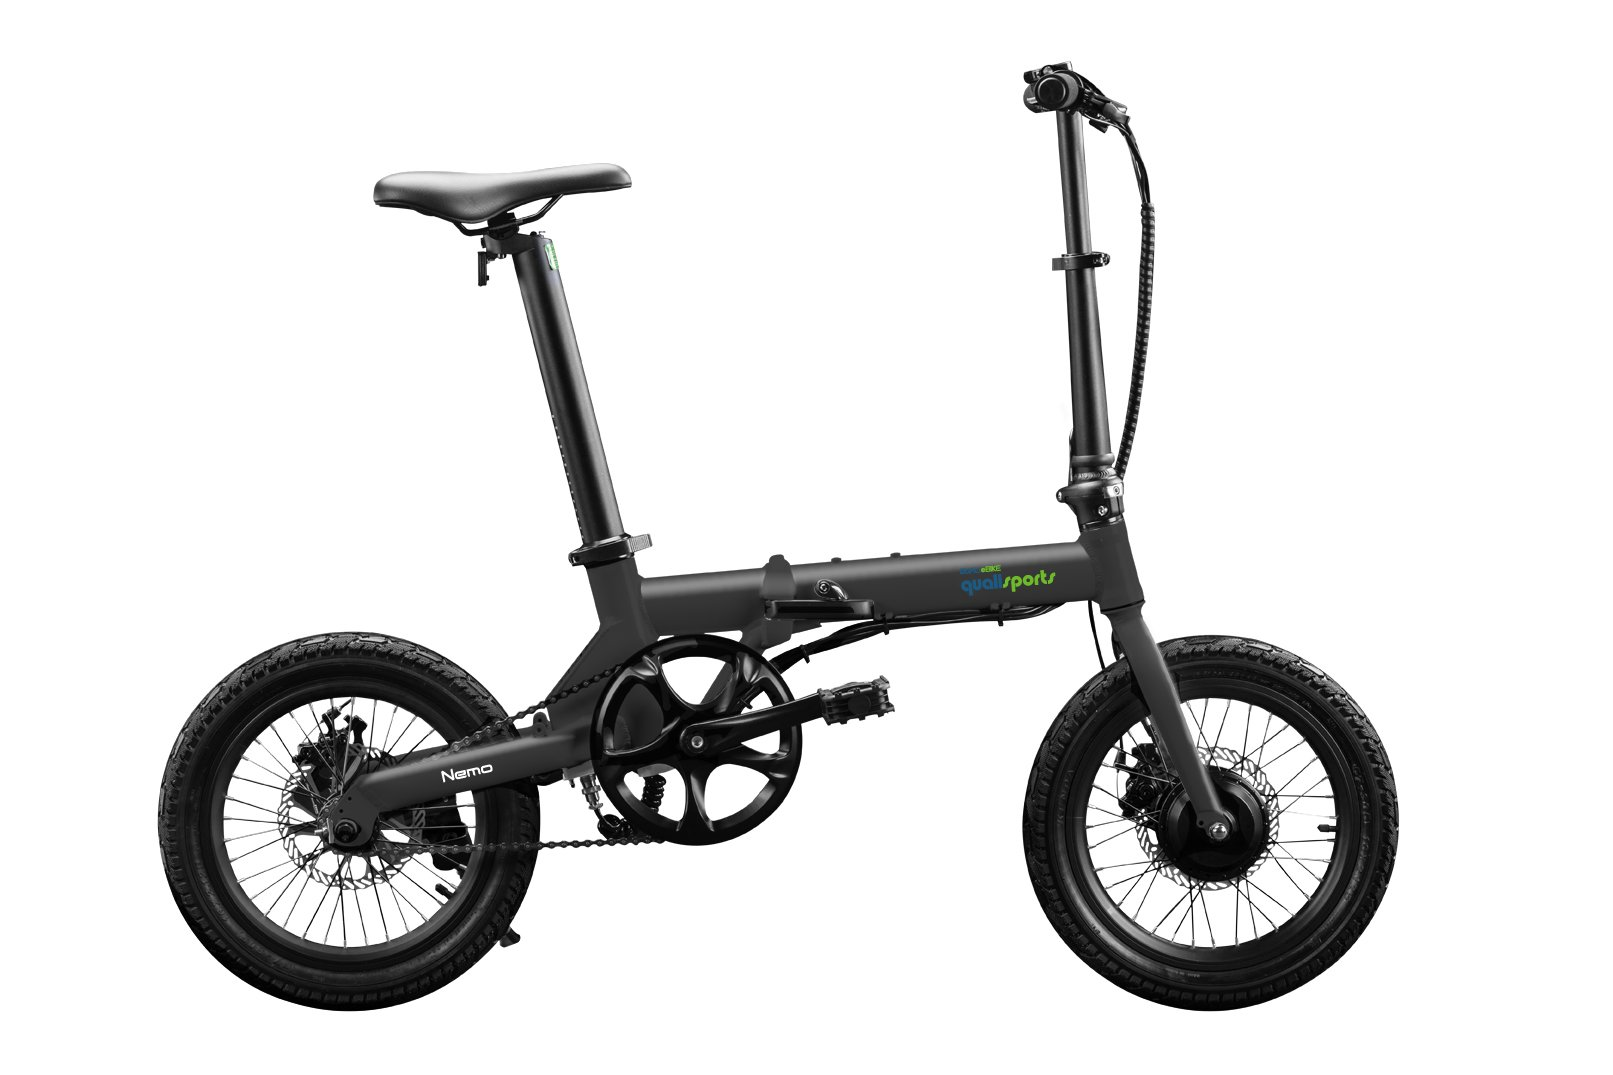 "Qualisports Nemo - 16"" Folding Electric Bike Black $899   ""NEMO"" is a super light 16 inch folding Electric Bike, which only weighs 30lbs.  It conveniently folds down to 30.7"" x 12.2"" x 22.8"" for easy storage.  Quali-bikers can easily store them in tight out of the way places in apartments, closets, under your work desk, in an RV, a boat or even on your own plane. The NEMO features an easy to read on-board multifunctional LCD display.  You can ride the NEMO in four different modes:  As a normal bike, (PAS) Pedal assist mode, Cruise control mode, or enjoy an effortless riding experience with a simple trigger throttle mode for getting over help over the climb.  The NEMO is powered by a 250W brushless geared motor, a FOC controller interface, which gives our out E-bikes smooth acceleration and less drag making this a perfect bike for smaller commutes.  Our patented seat post battery system (Samsung 252WH) is not only stylish and sleek, it also gives the NEMO a range of 30 miles on a single charge."